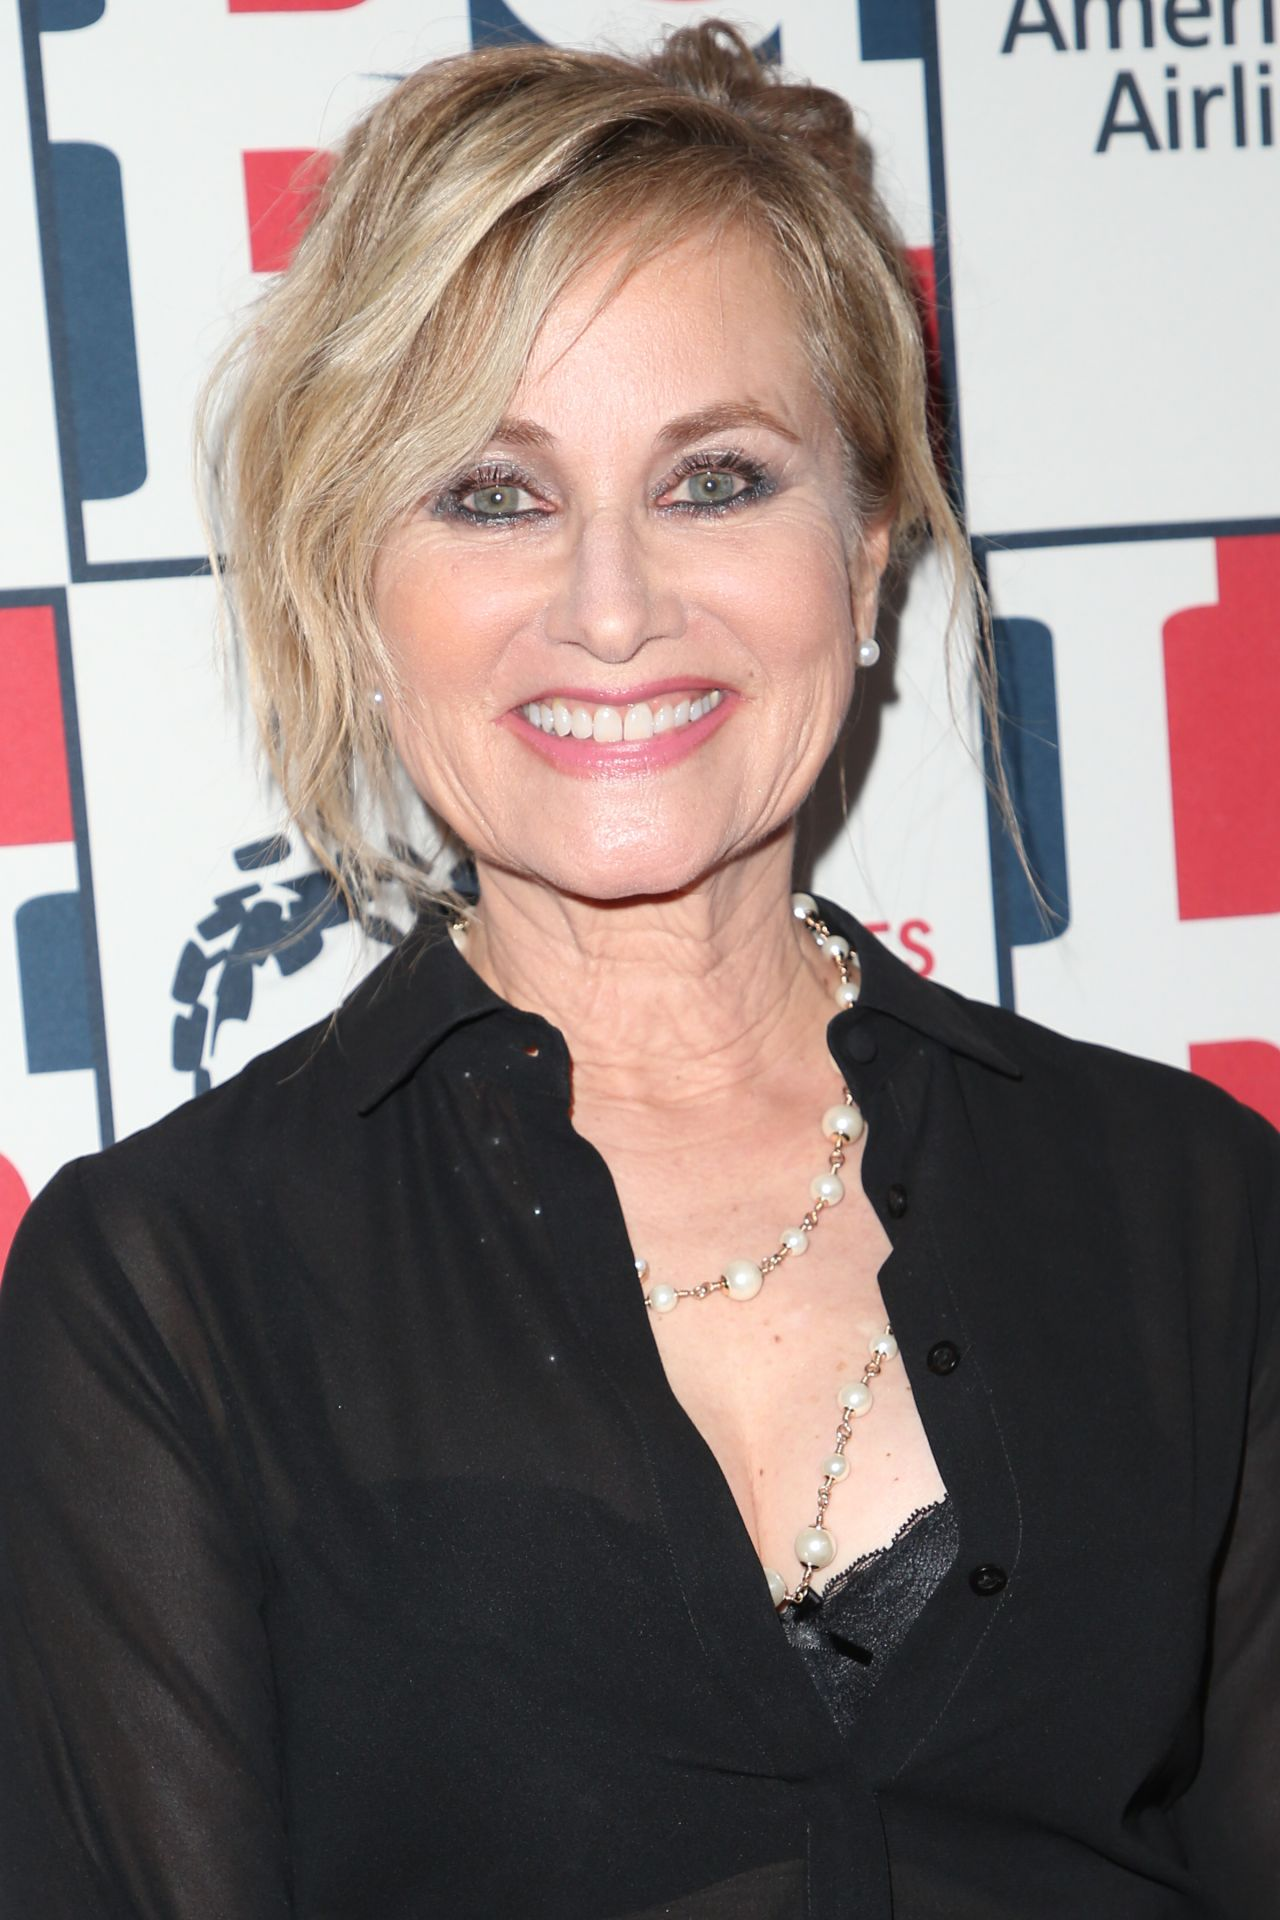 341k Followers 120 Following 185 Posts See Instagram photos and videos from Maureen McCormick momccormick7